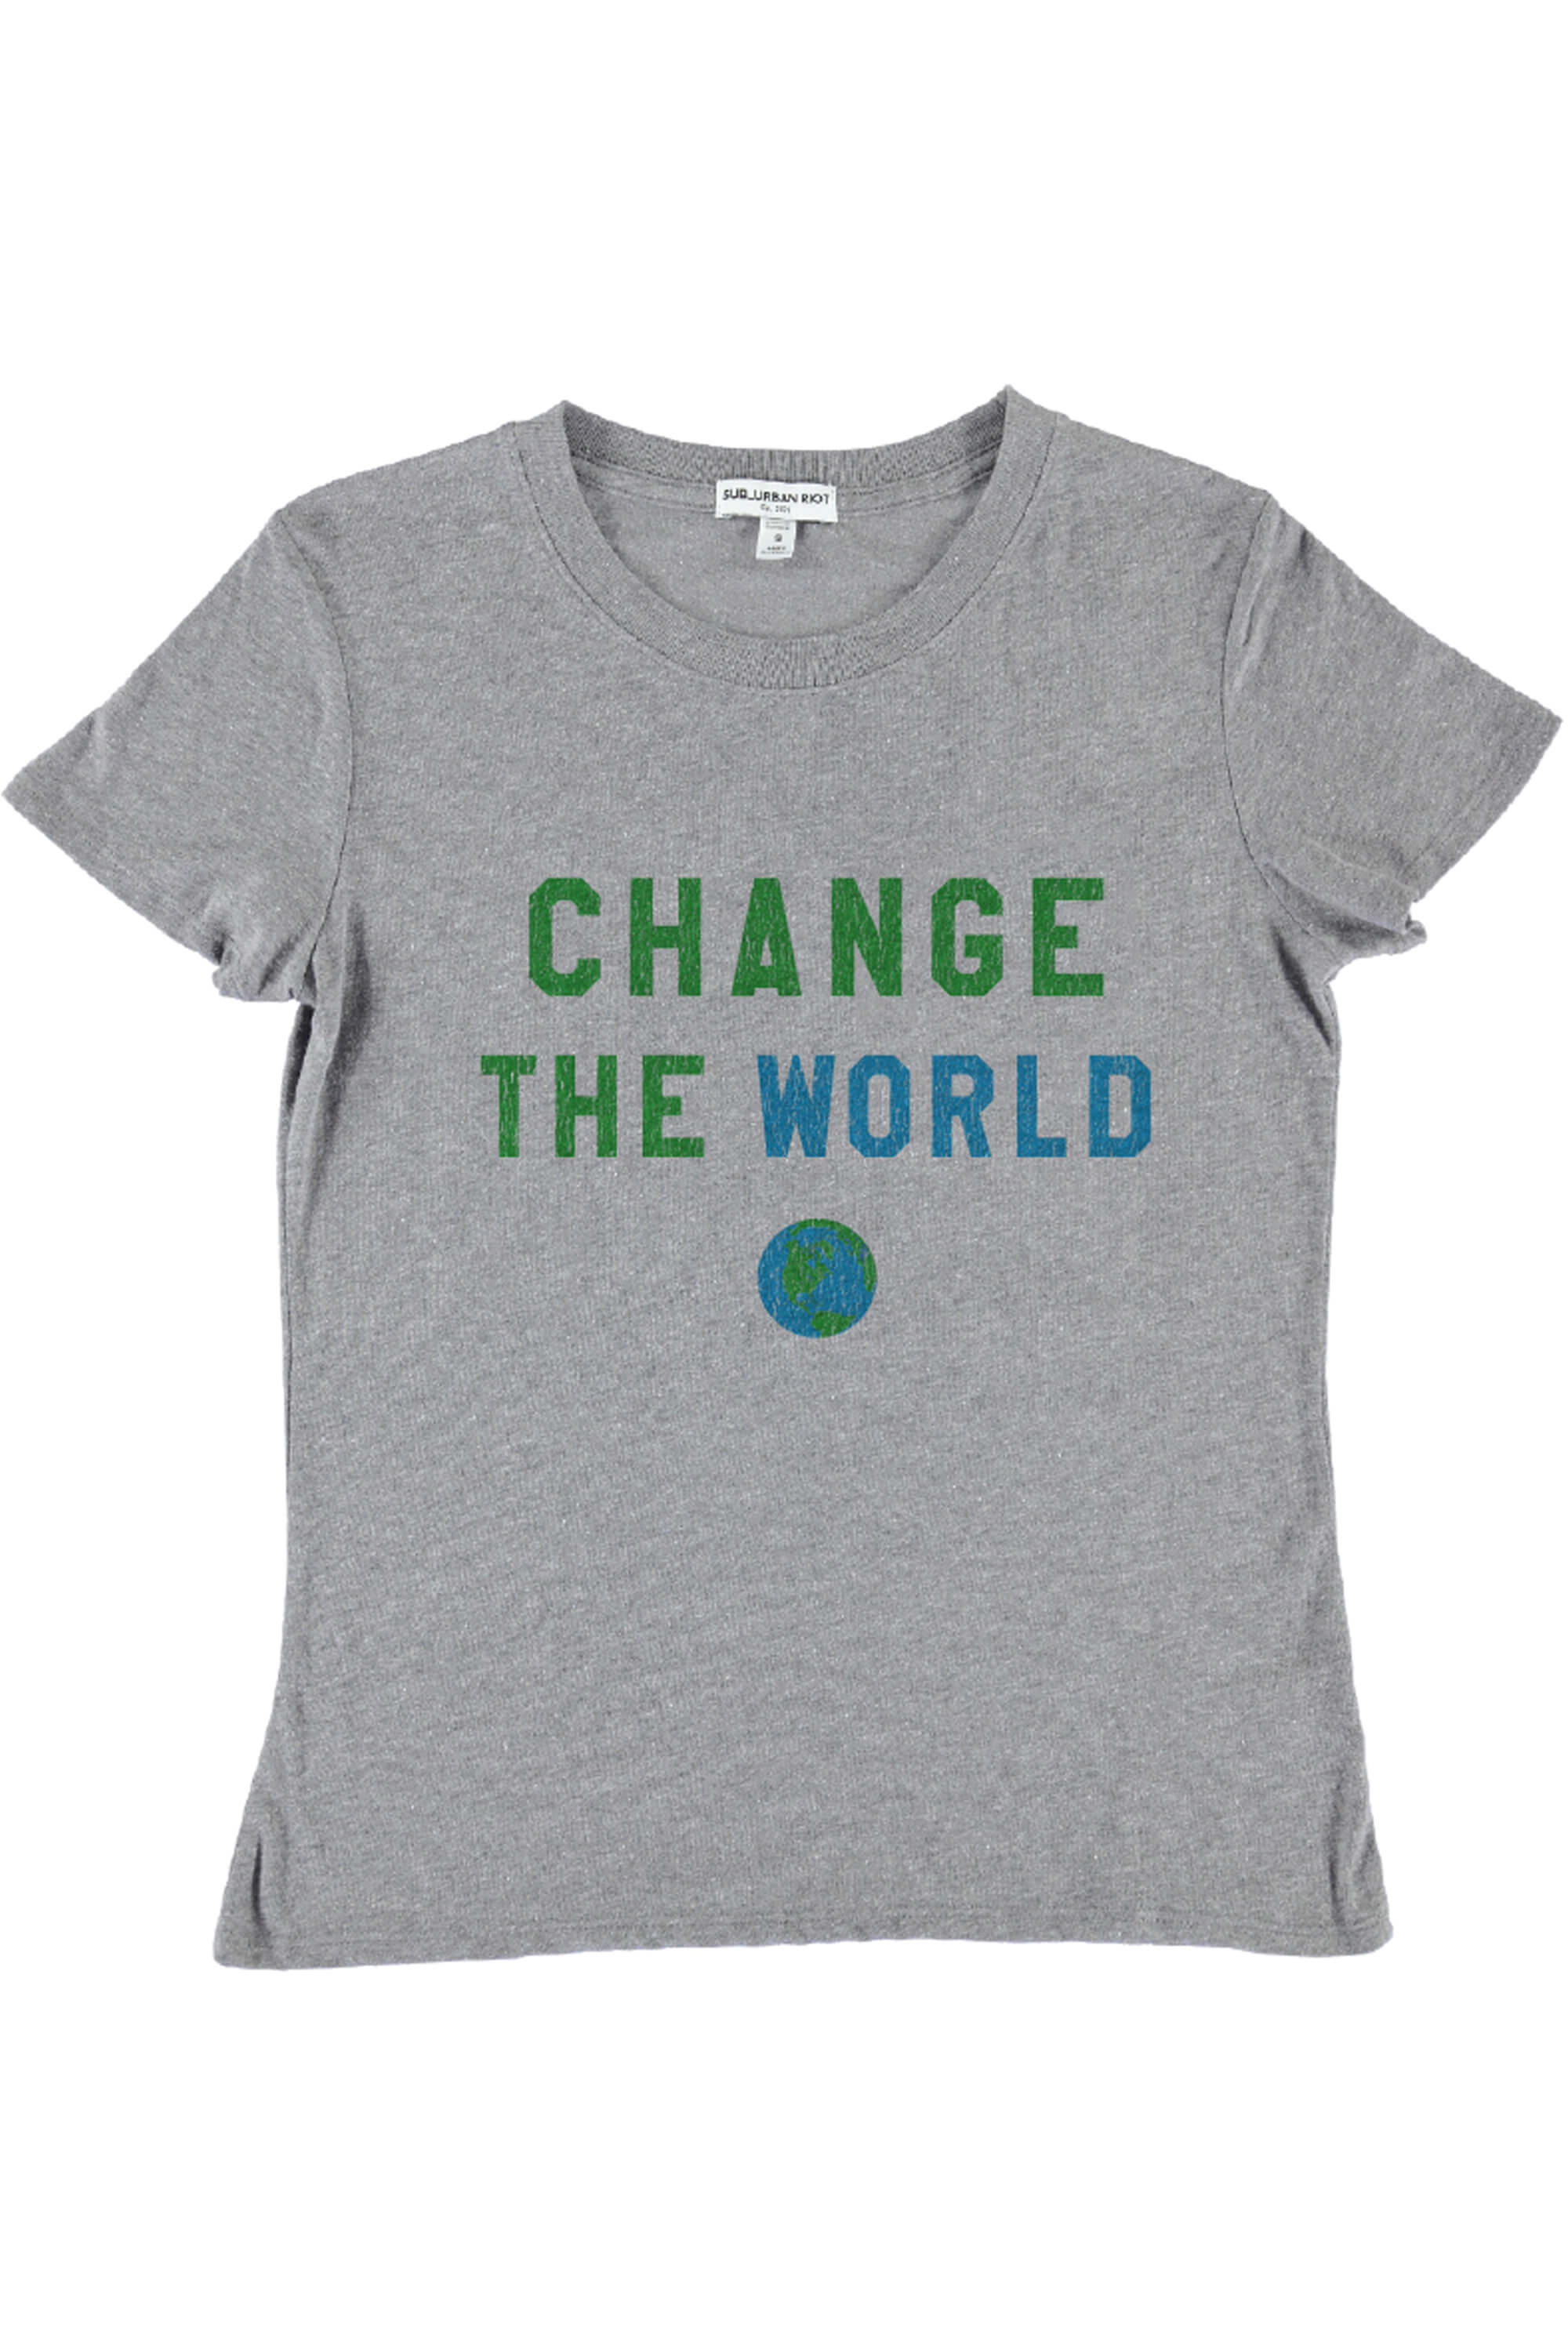 CHANGE THE WORLD YOUTH SIZE LOOSE TEE